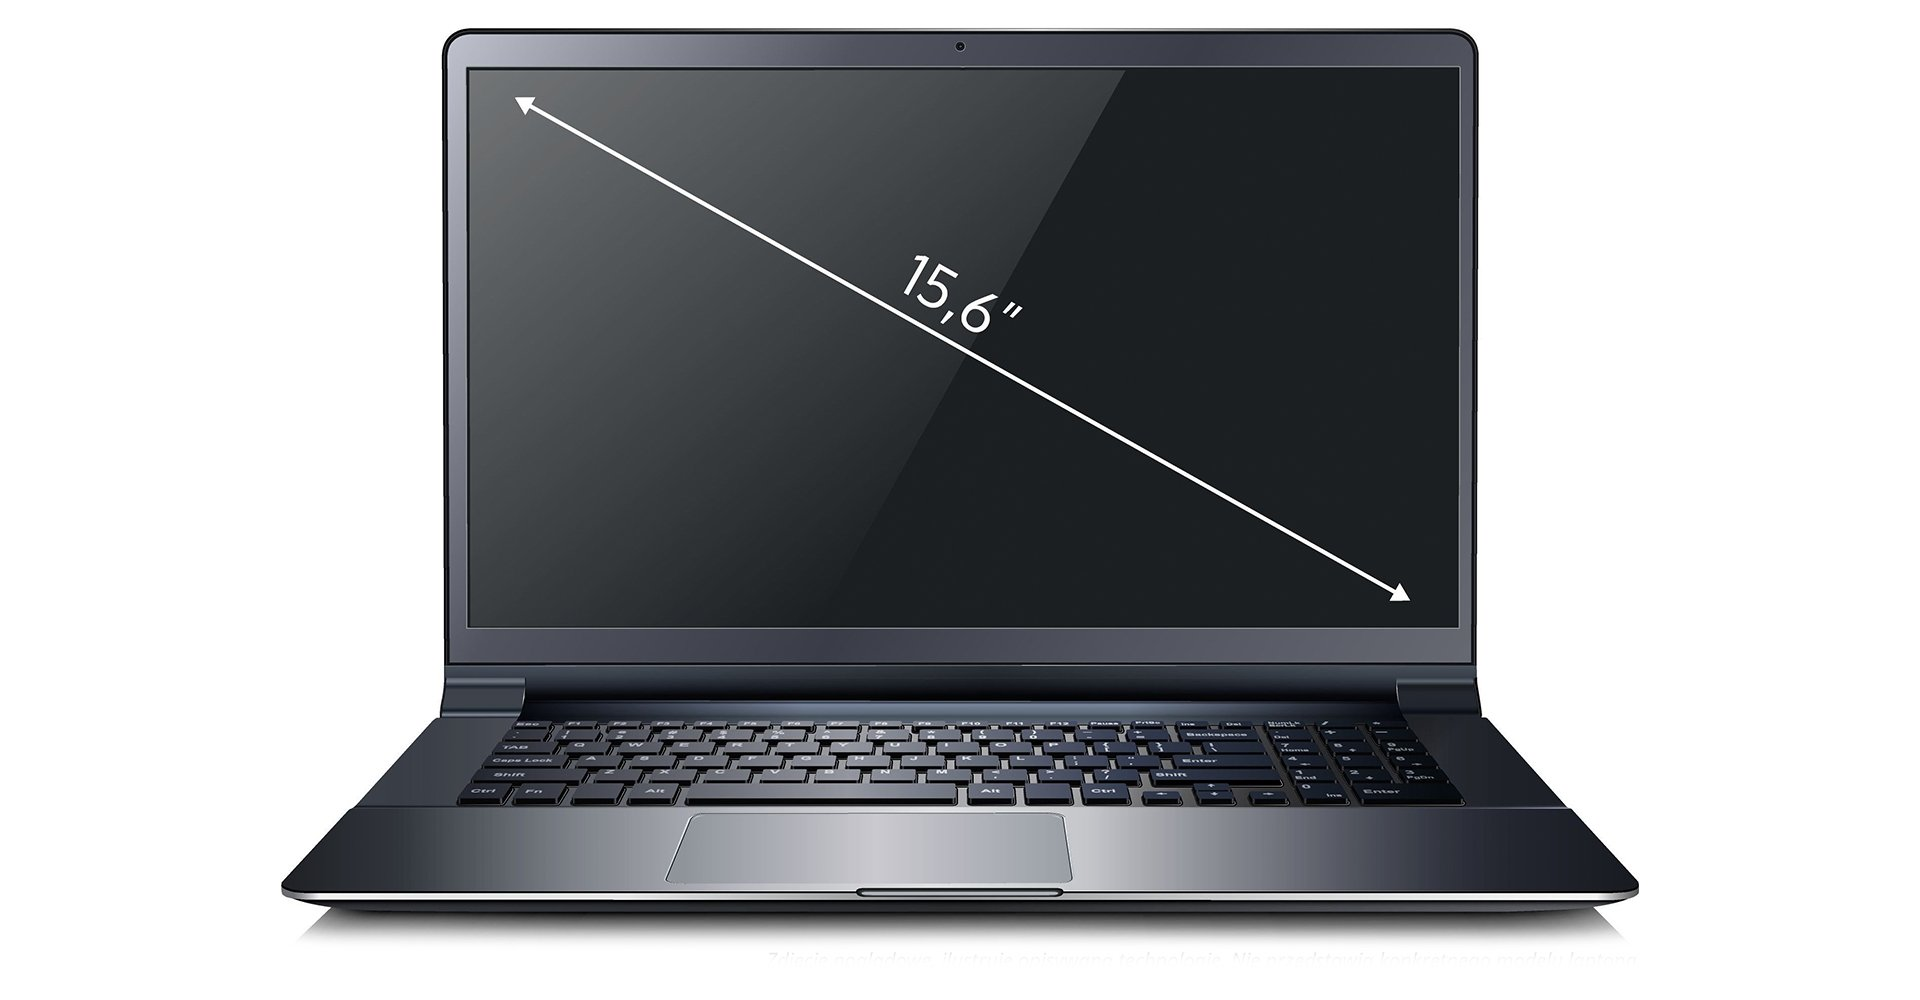 Lenovo IdeaPad 3 15IIL05 (81WE004TPB)                             15.6-tollise diagonaaliga